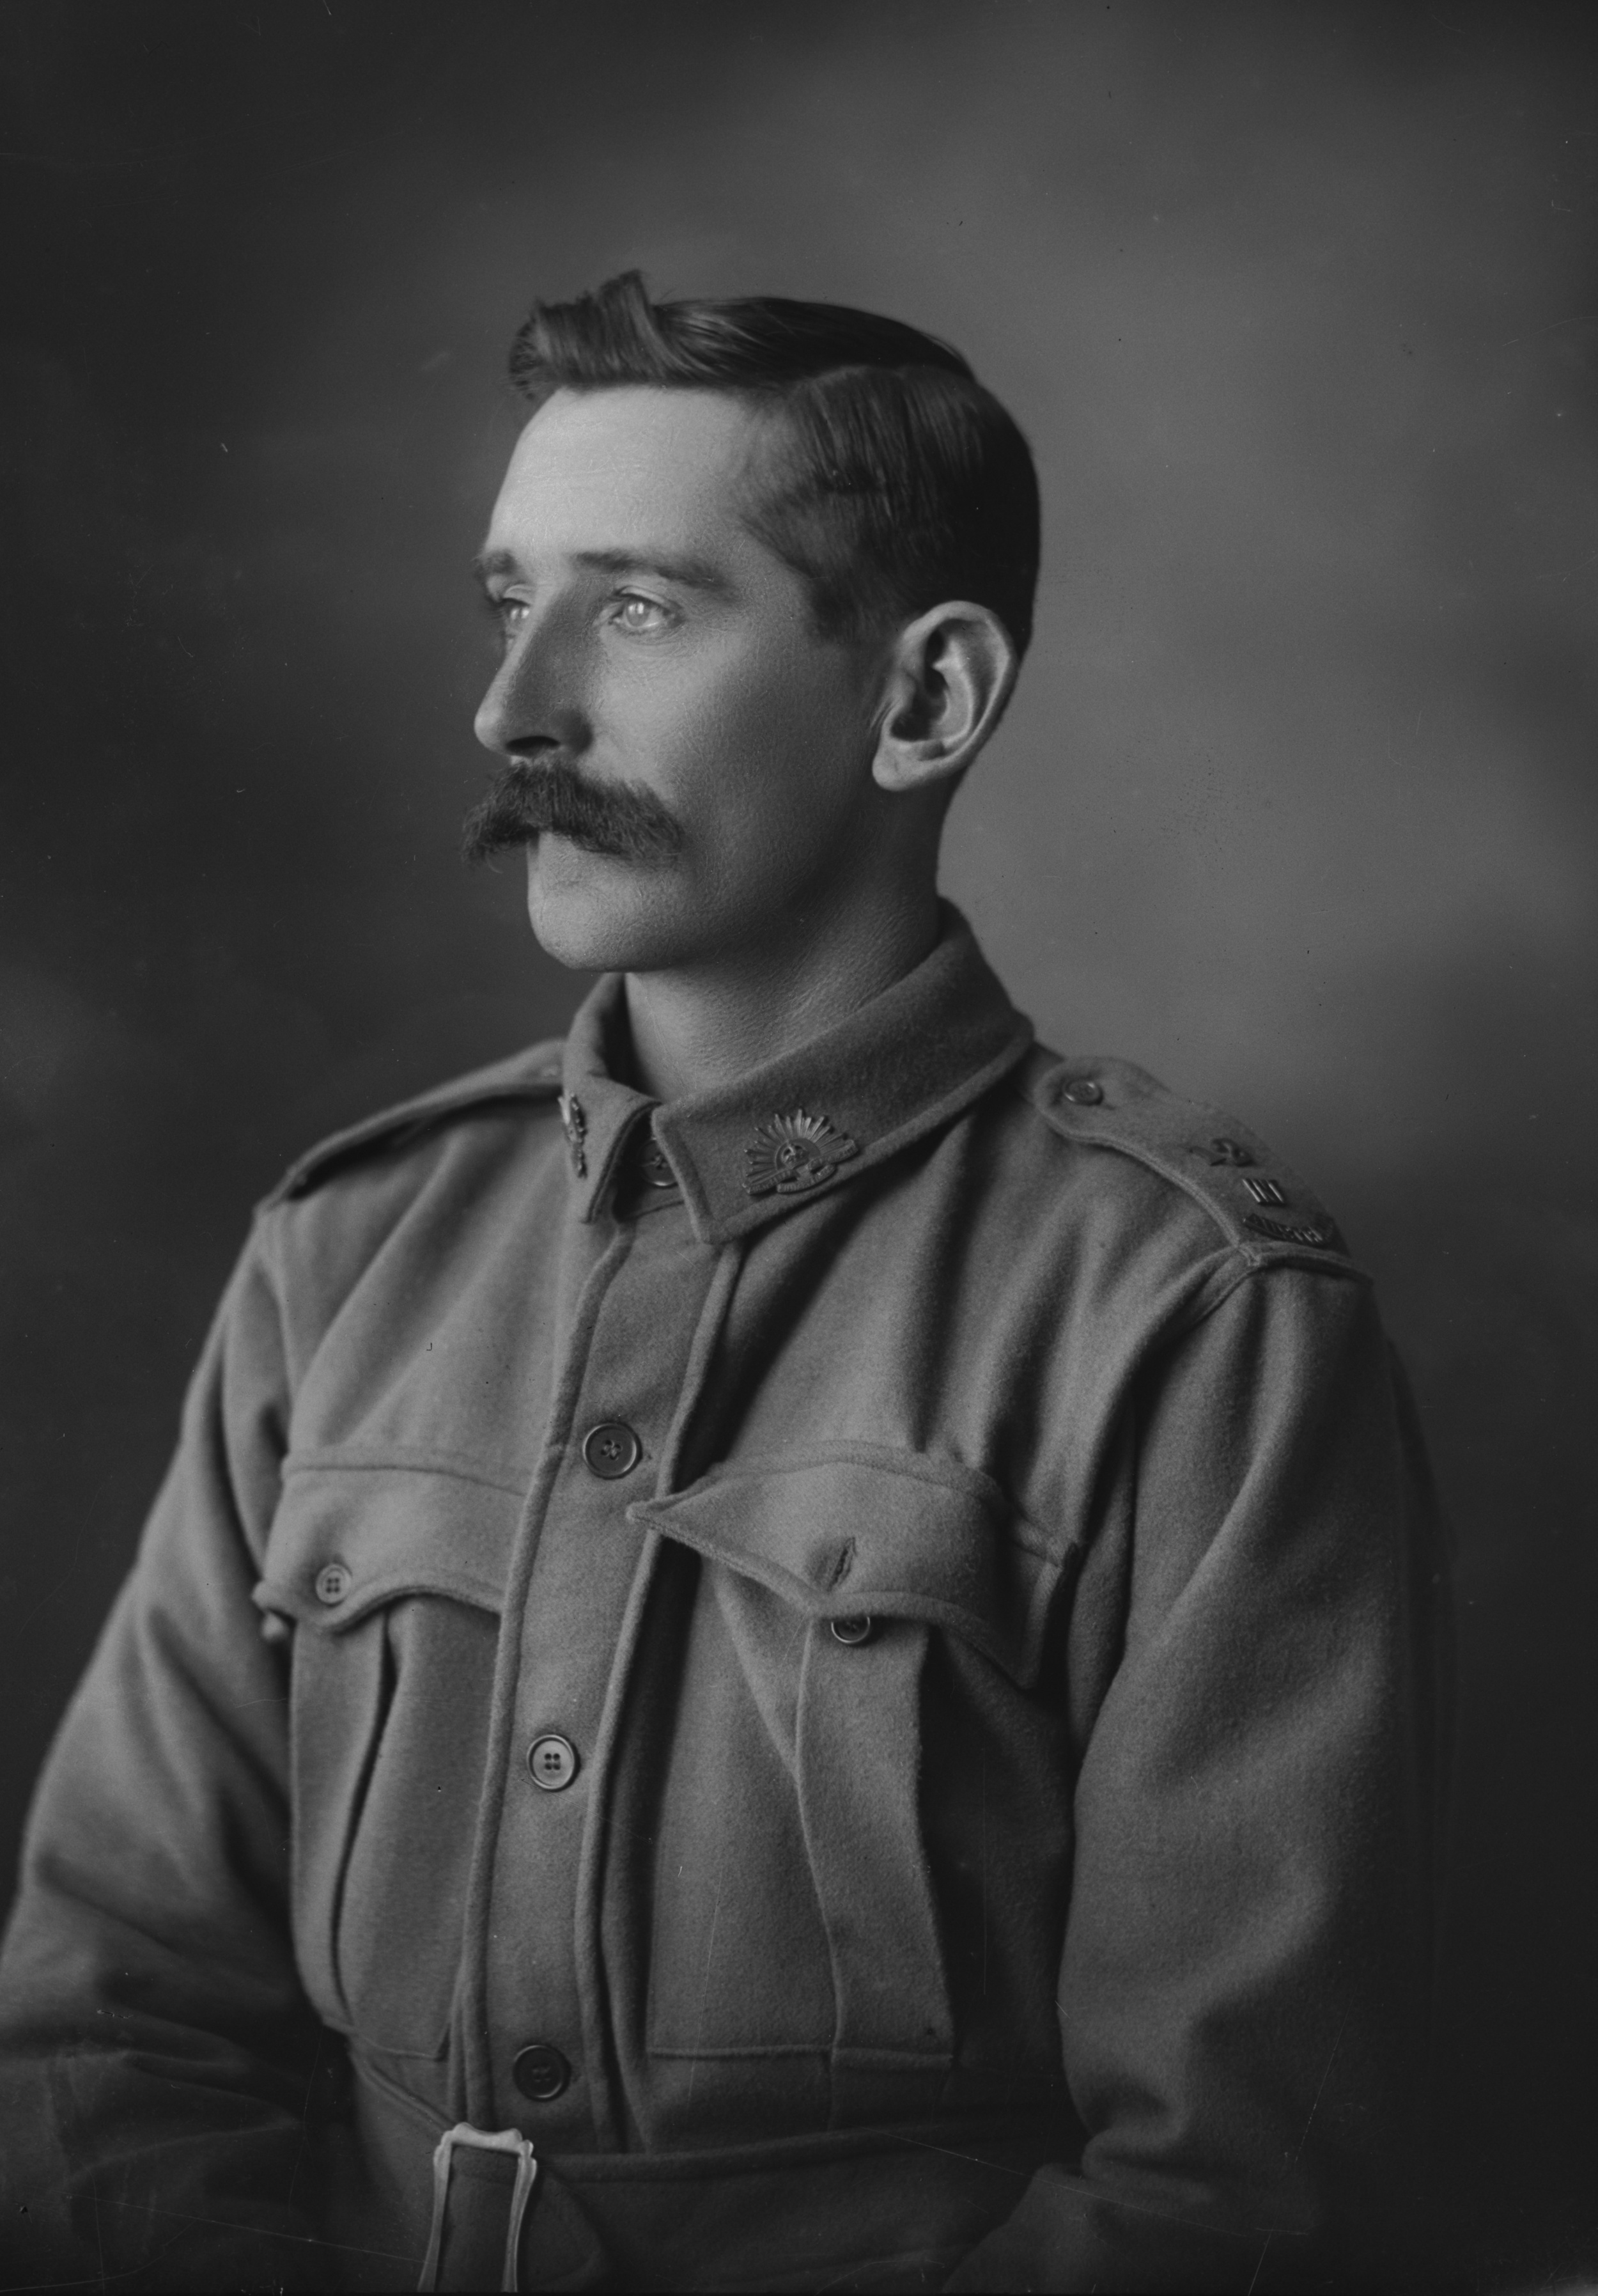 Photographed at the Dease Studio, 117 Barrack Street Perth WA Image courtesy of the State Library of Western Australia: 108304PD